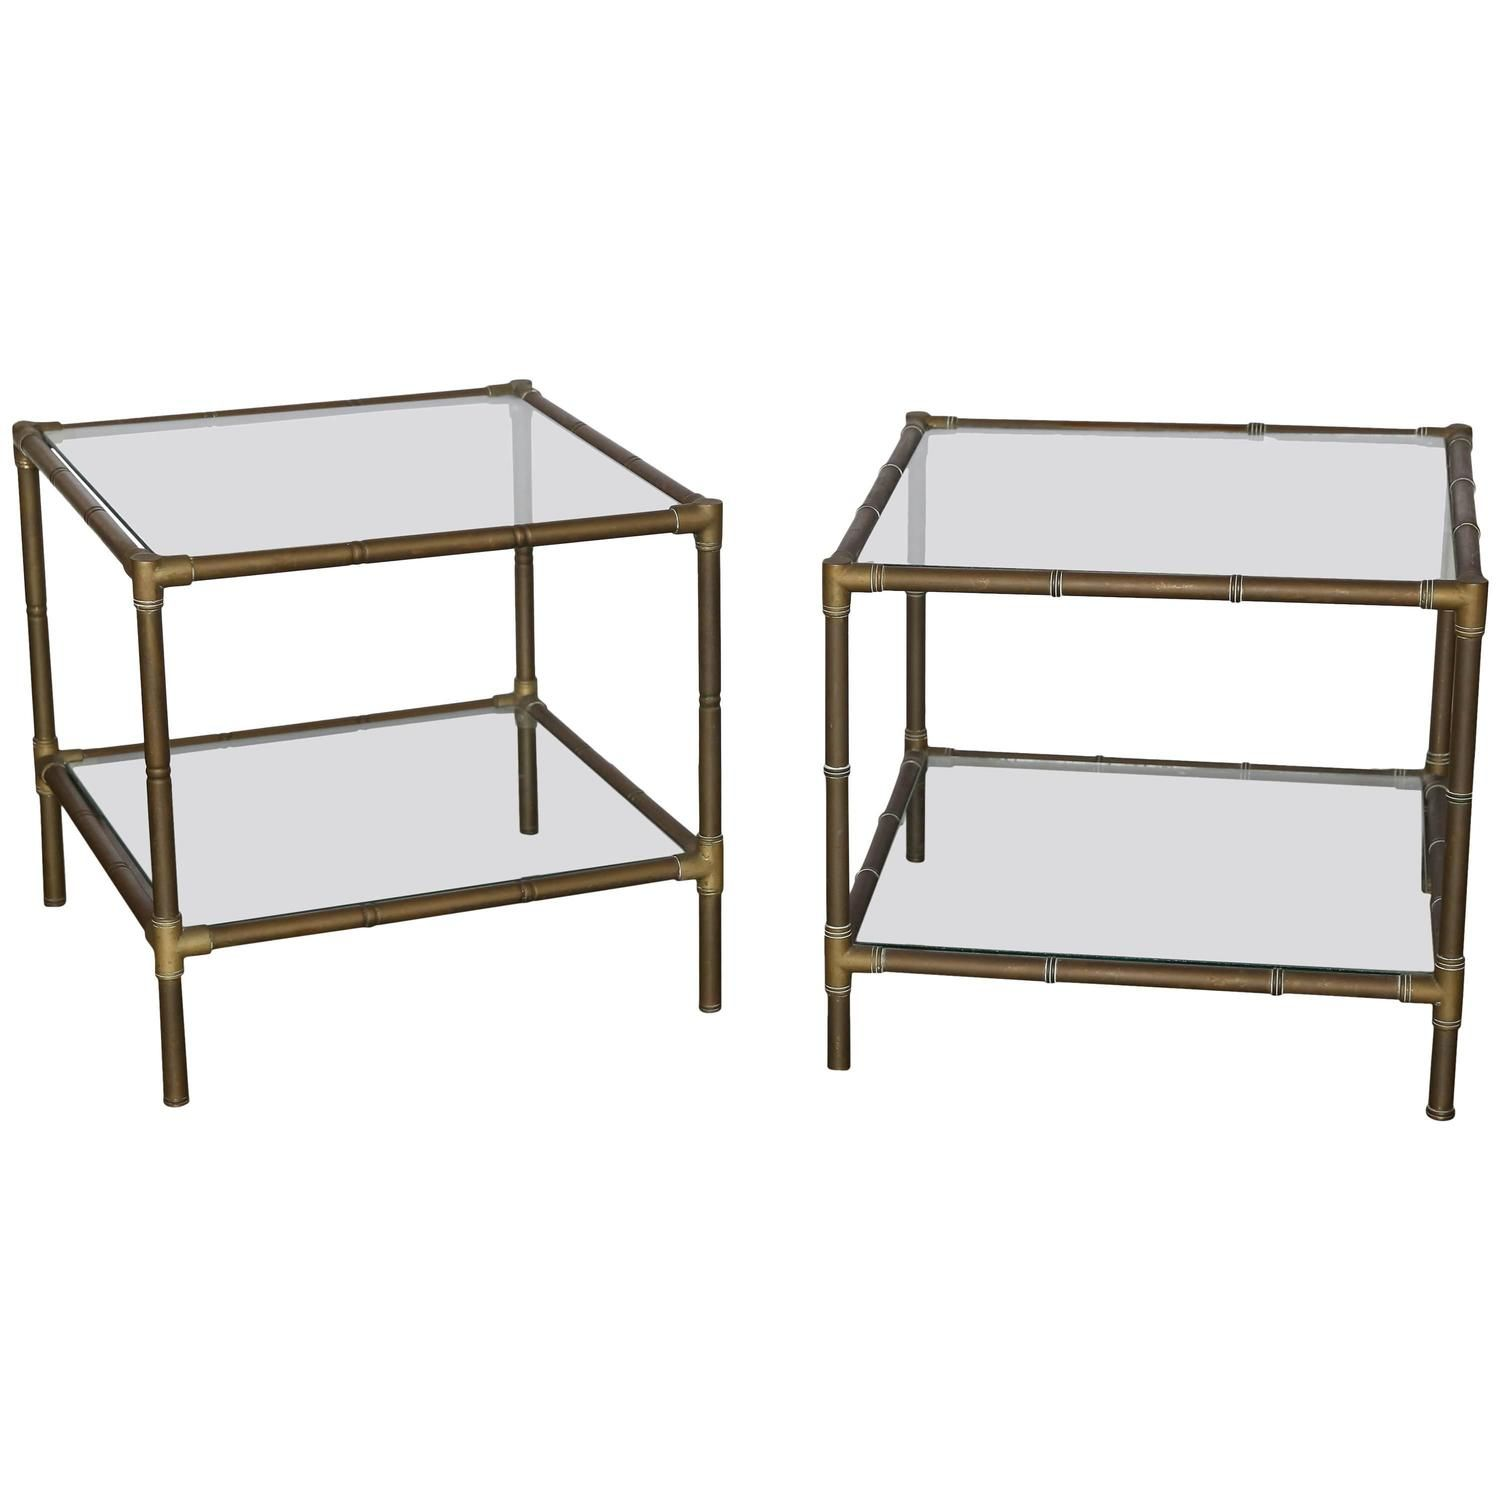 Coffee Table Legs Cape Town: Mid-Century Modern Argentinian Pair Of Faux Bamboo Bronze